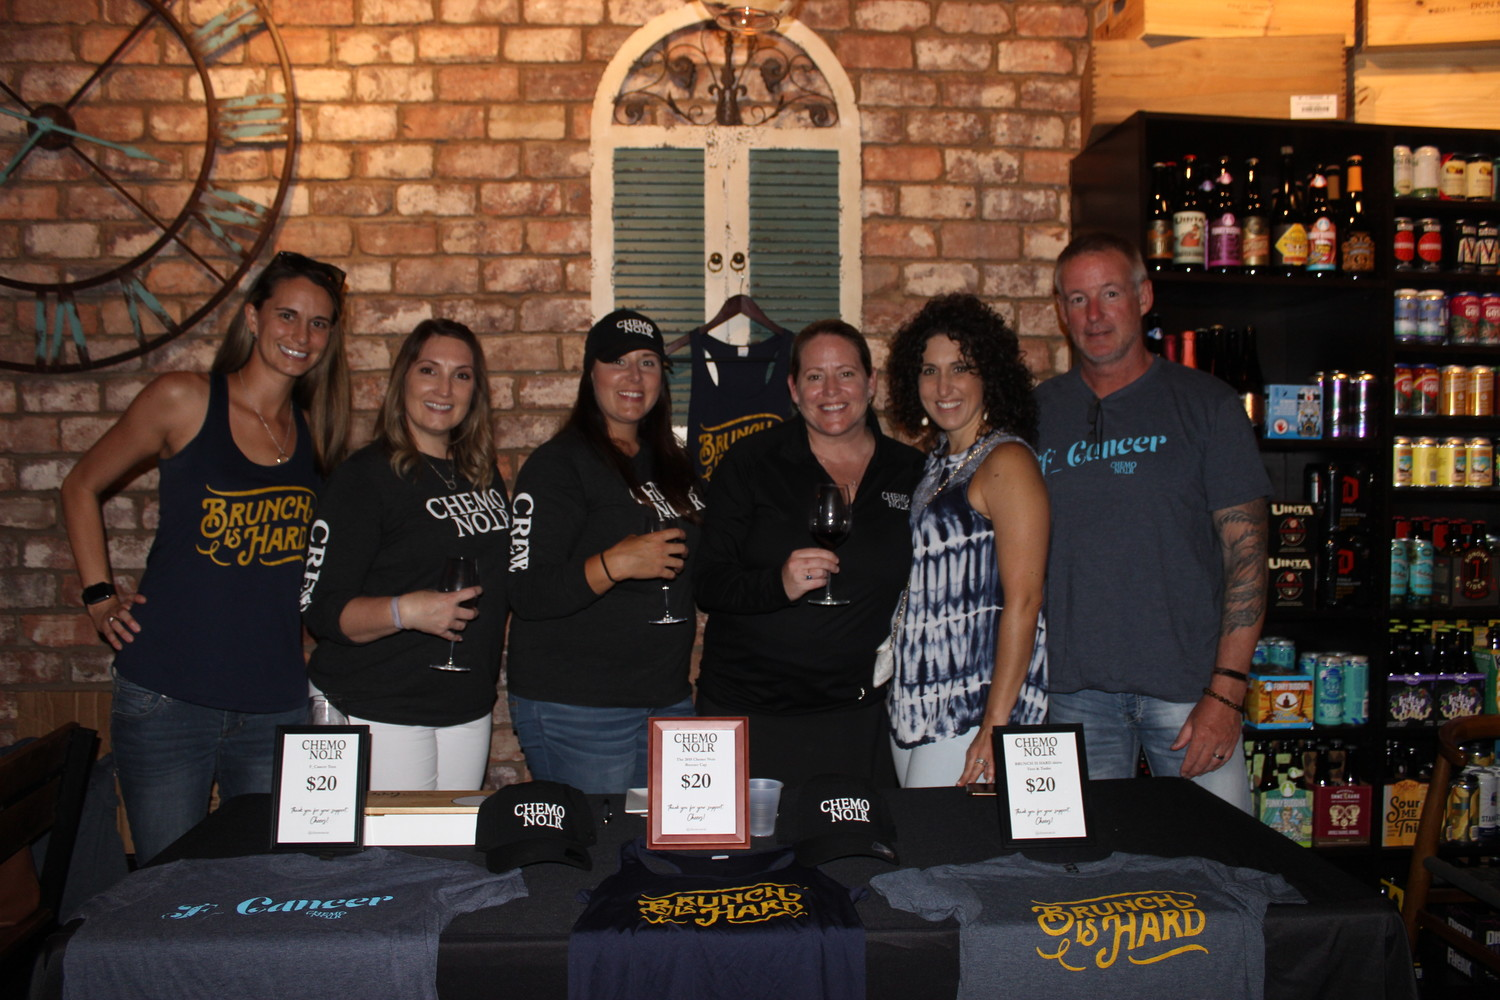 Wendy Alexaitis, Amy Shopp, Shannon Largin, Katrin Casey, Nicole Bickford and Bill Bickford gather at the CRUSH Cancer event at Coastal Wine Market Aug. 18.